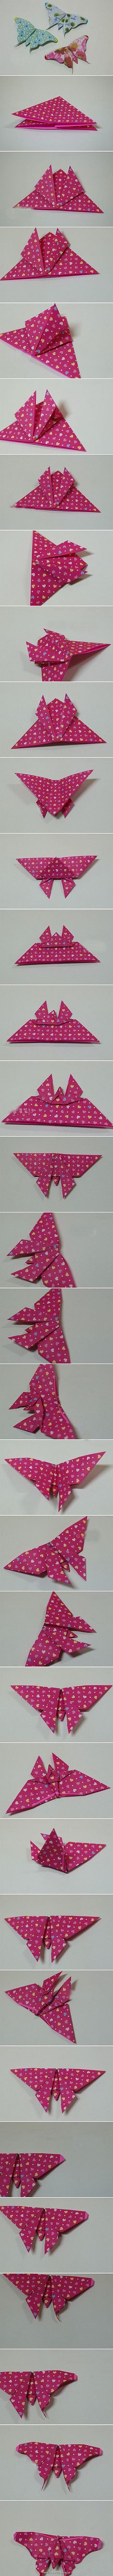 Handmade DIY origami butterfly tutorial - embellishment for cards - bjl